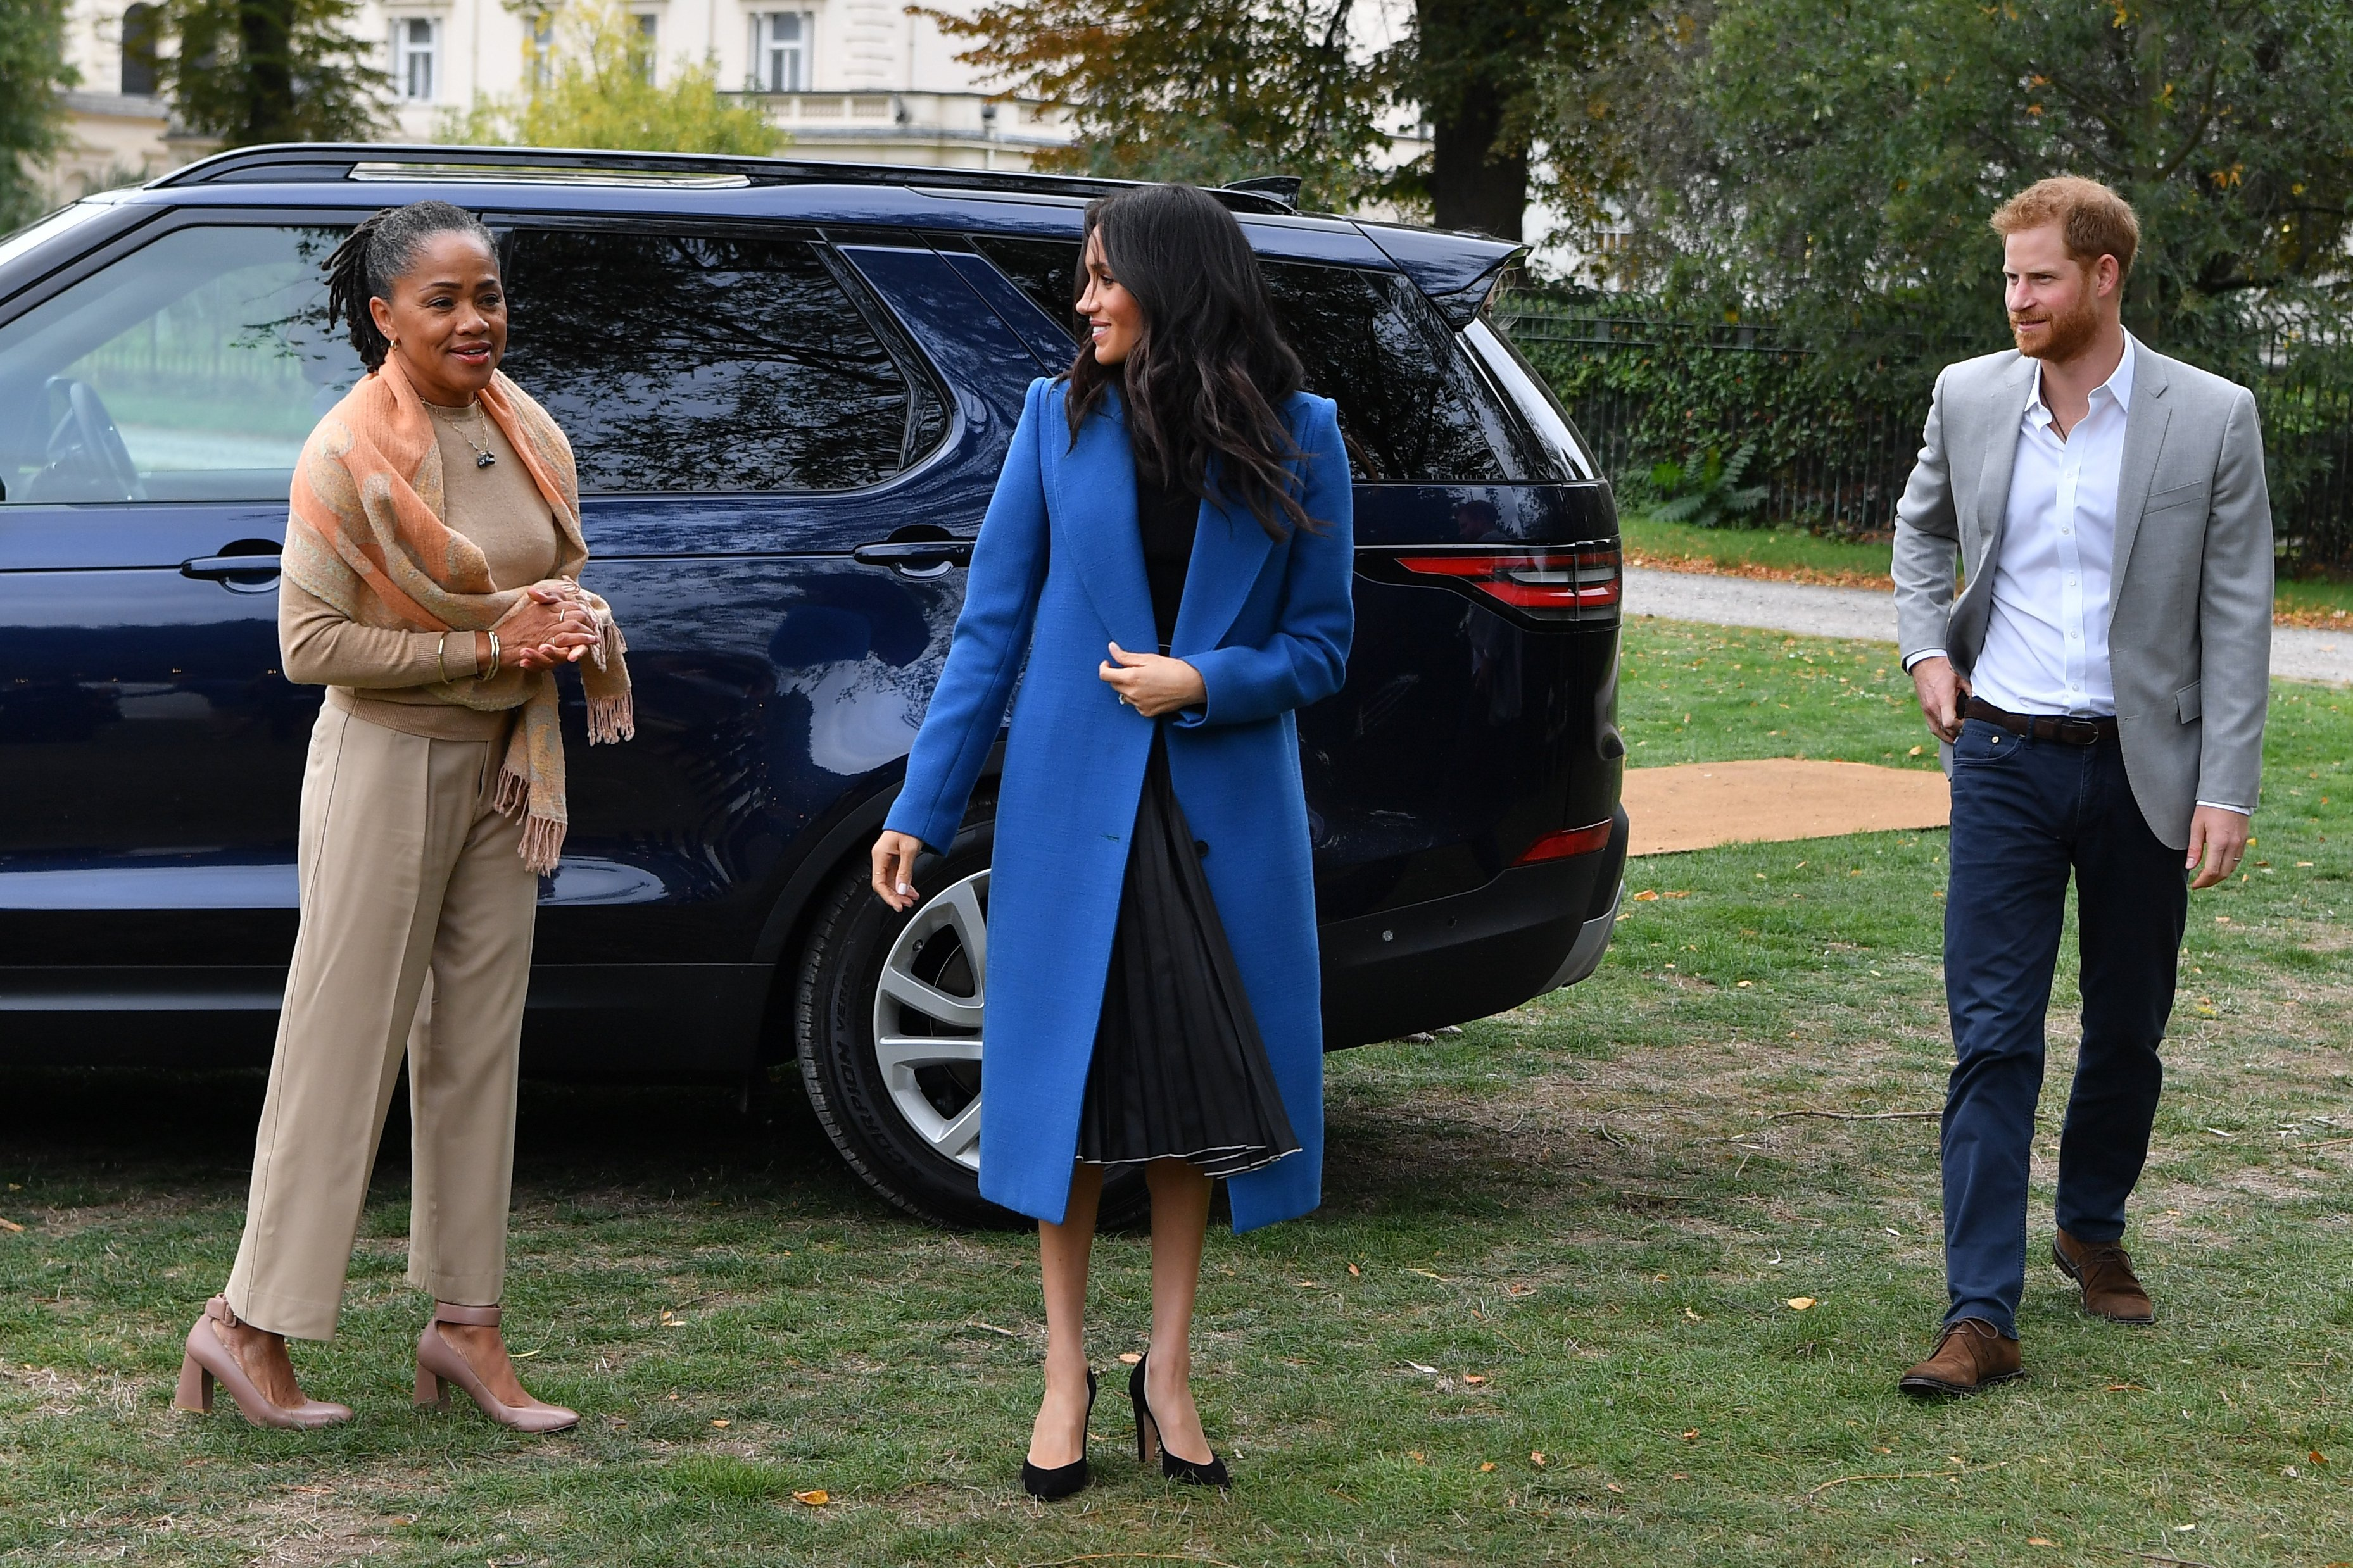 Doria Ragland with Meghan Markle and Prince Harry arrive at a cookbook event in 2018 | Photo: Getty Images